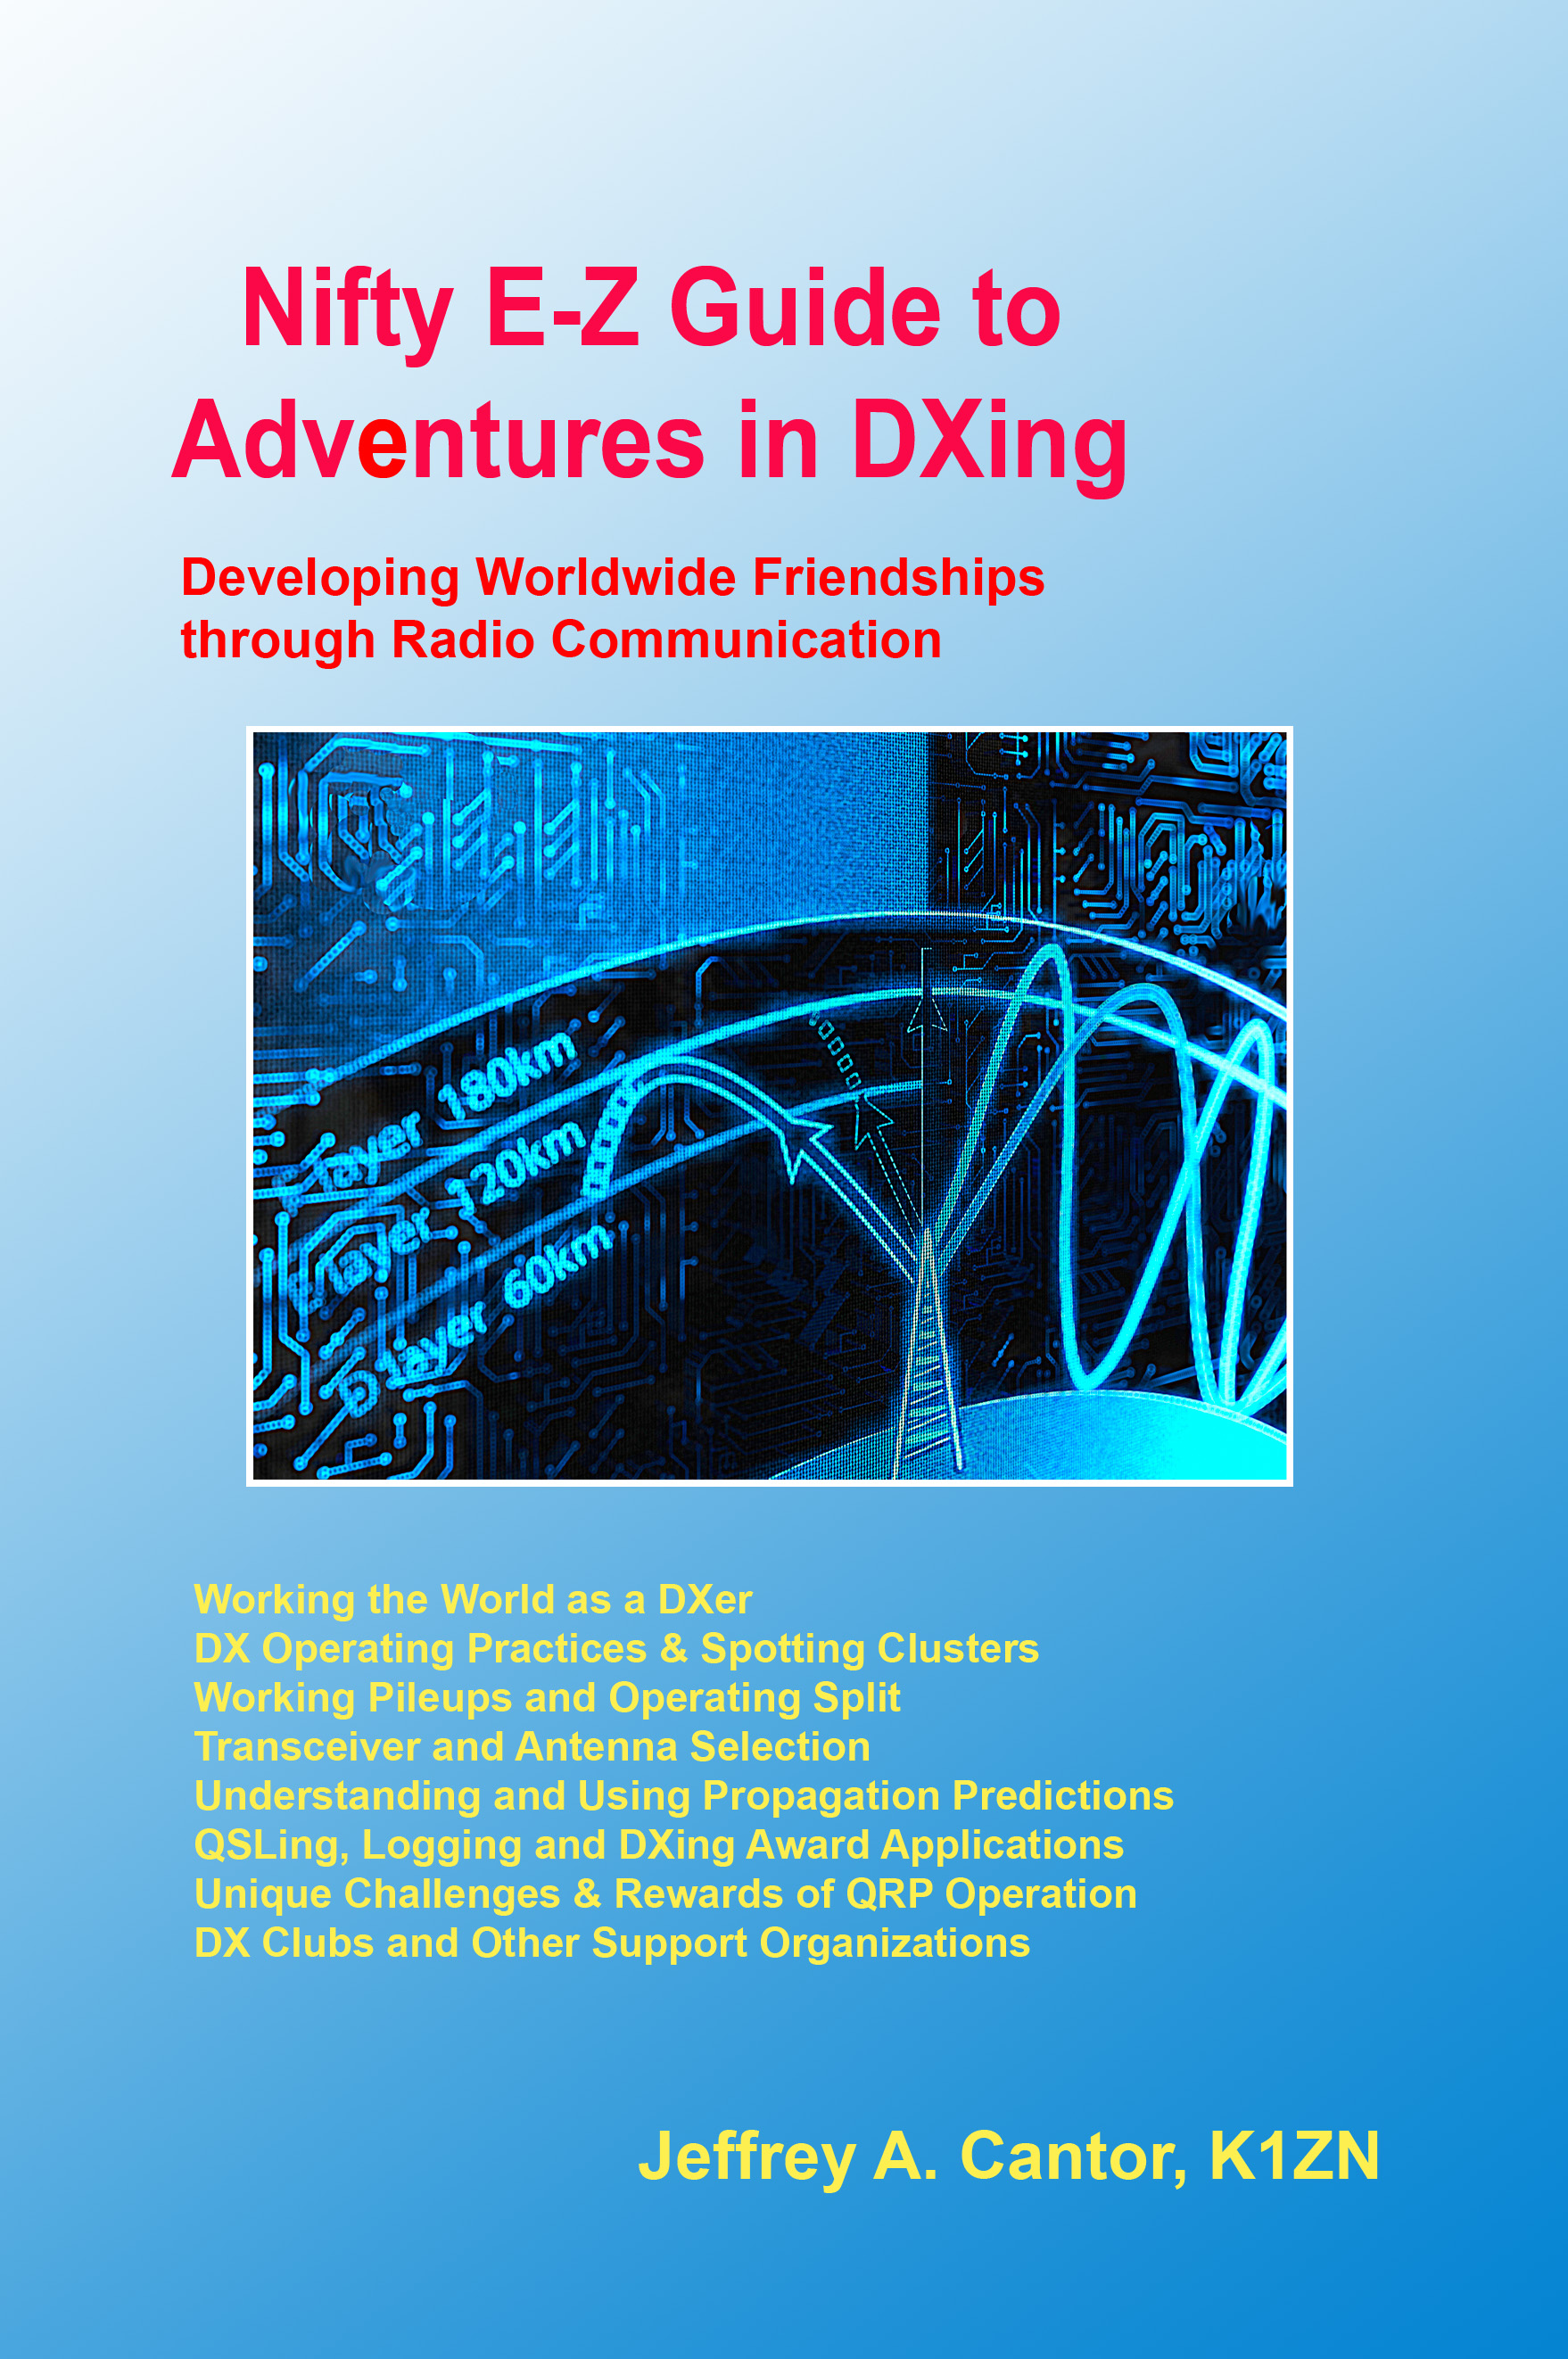 Book on DXing